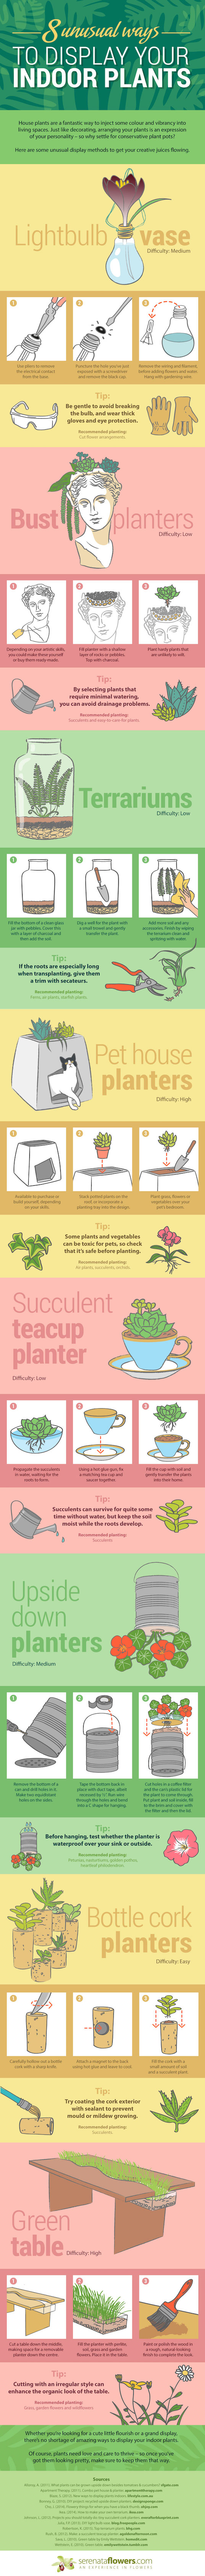 Serenata Flowers, infographic, reader submitted content, houseplants, plants, creative plant display, DIY plant display, plant bust, plant table DIY, bottle cork planters, upside down planters, succulent teacup planters, pet house planters,